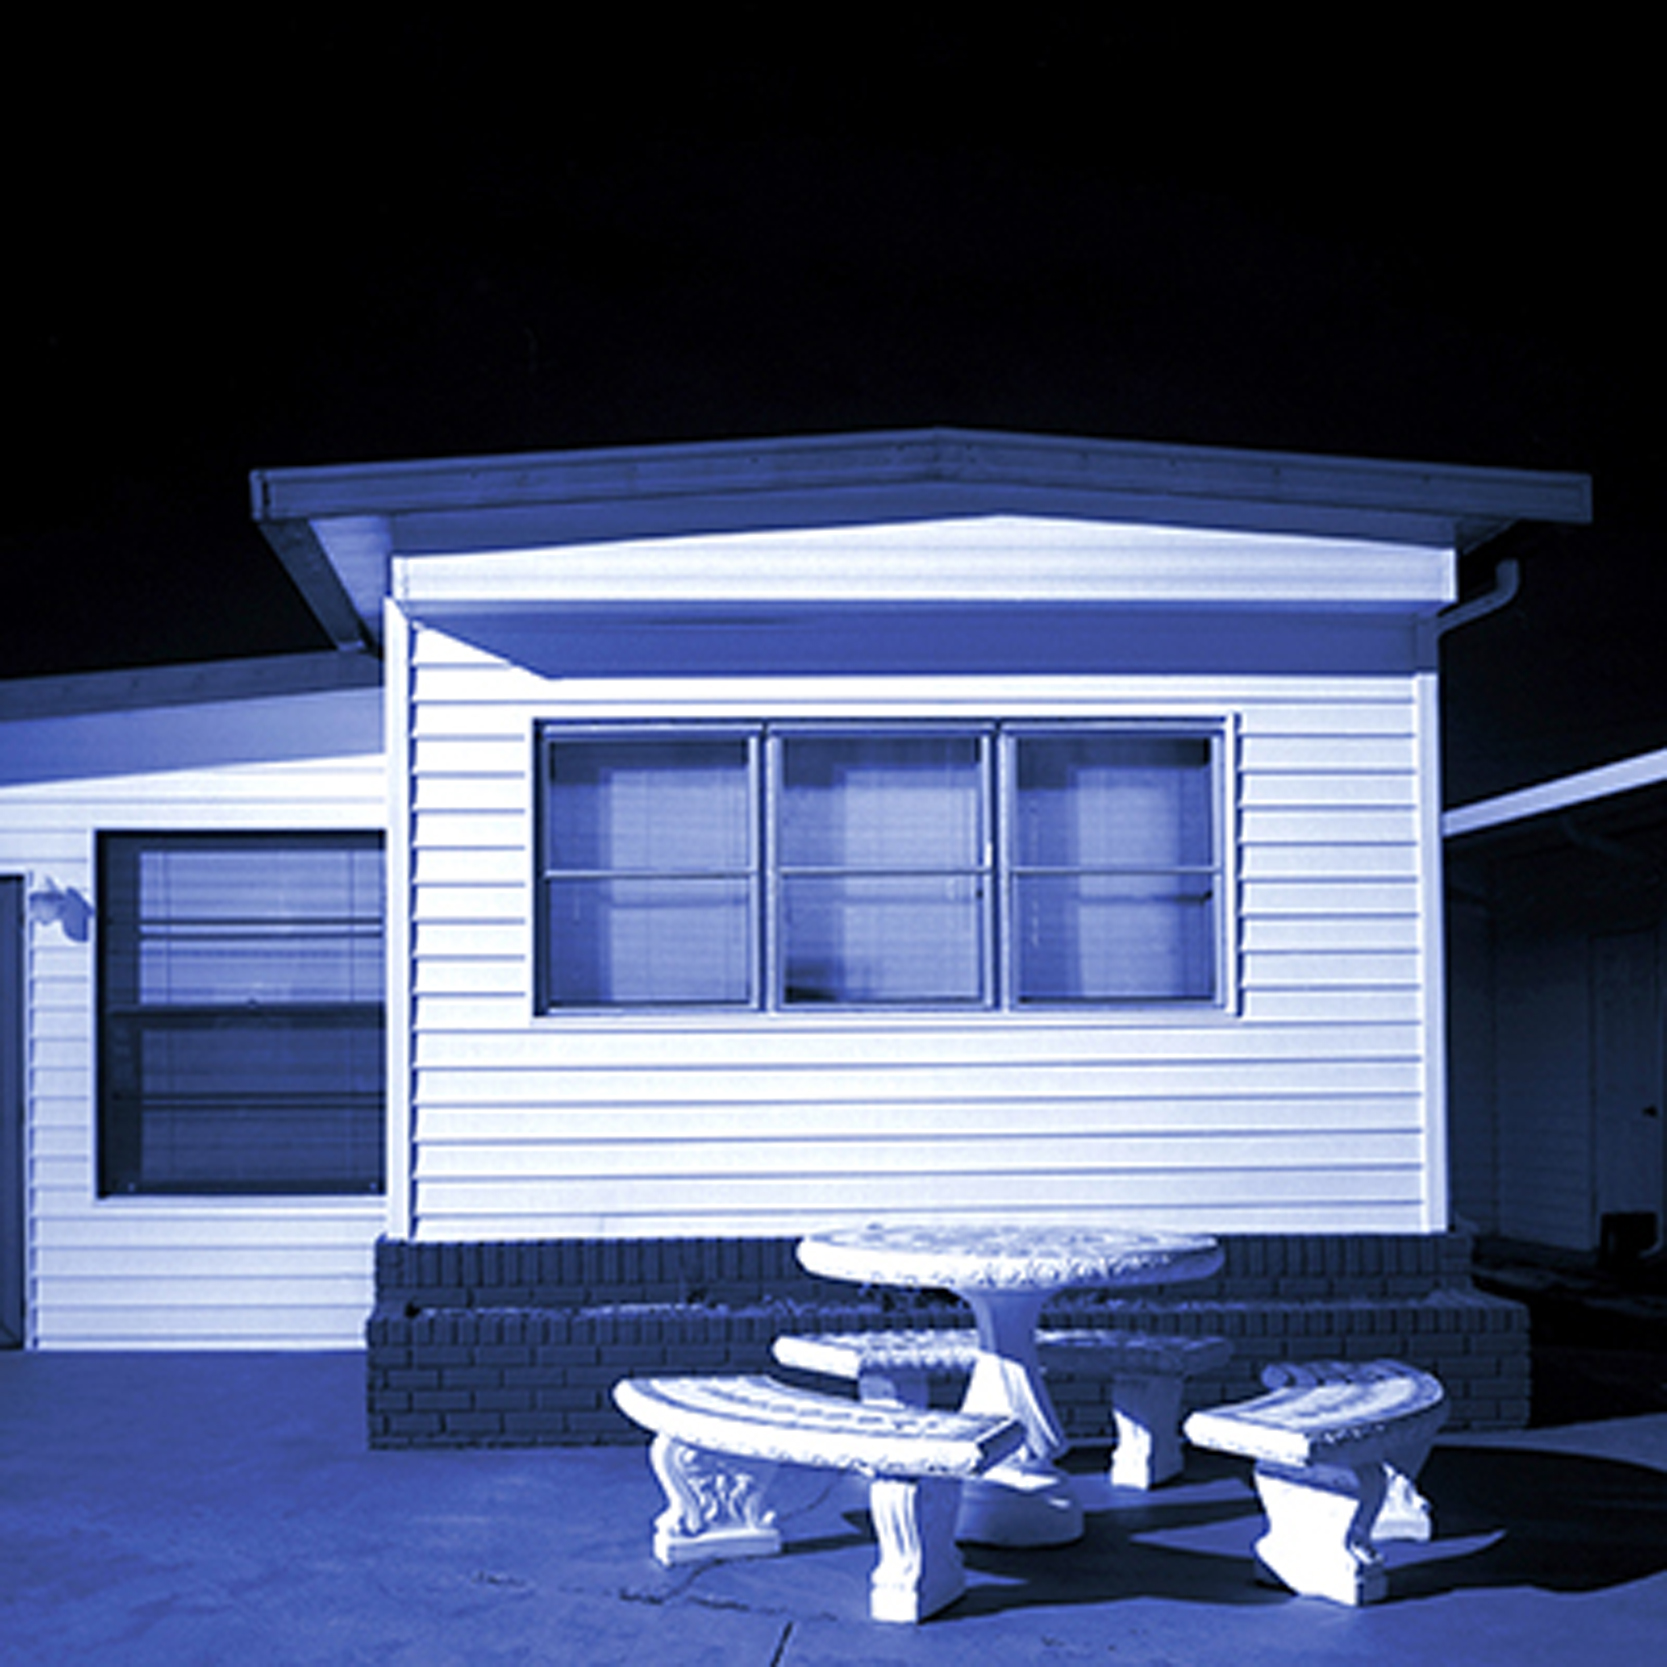 Mobile Home #13, 15 x 15 inches / 38 x 38 cm, Fuji crystal archive print, edition of 10, 2001-2006